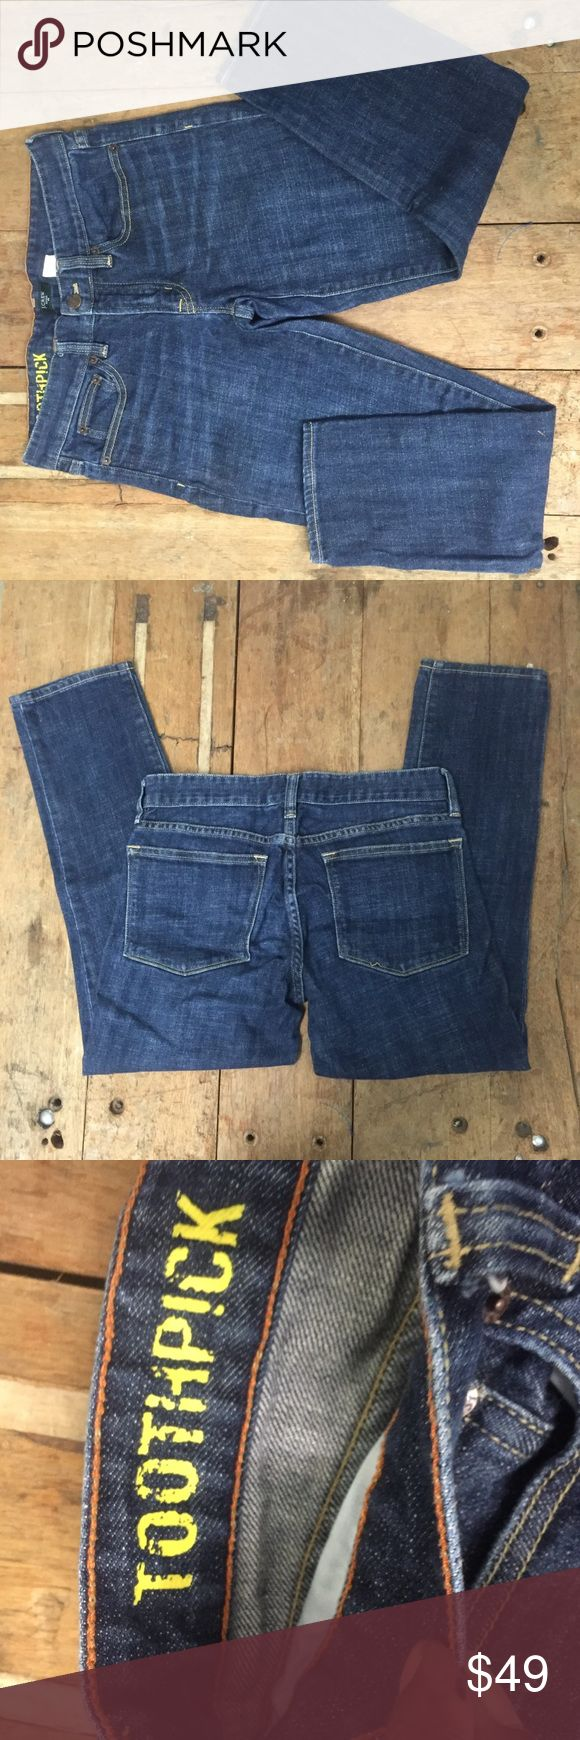 """J. Crew Factory Toothpick Jeans Excellent used condition. One small flaw (purchased this way) stitching loose in area of back pocket. Please see photo. Cotton with a hint of stretch. Sits lower on hip, with a superskinny, straight leg. 25"""" inseam.  Waist 29"""" Traditional 5-pocket styling. Machine wash. Import. Item 70934.  Location (1021). These are Skinny Jeans. J. Crew Jeans Skinny"""